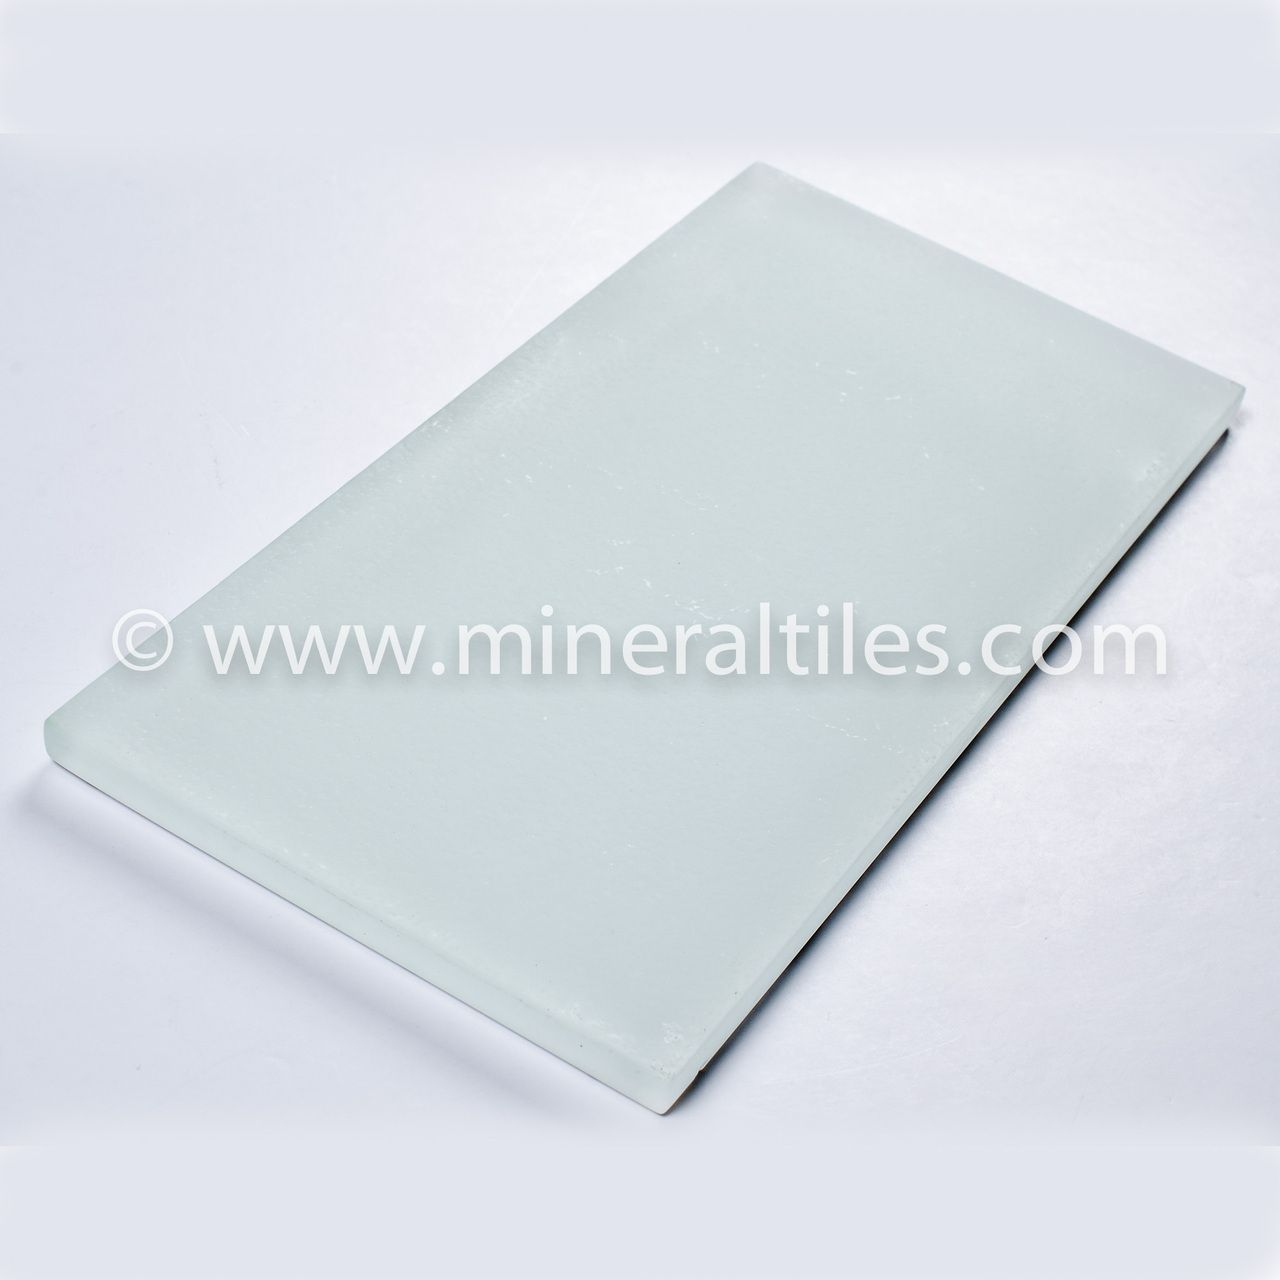 21 Best Images About Frosted Glass Tile Kitchen On: Ocean Glass Subway Tile White Frosted 4x8